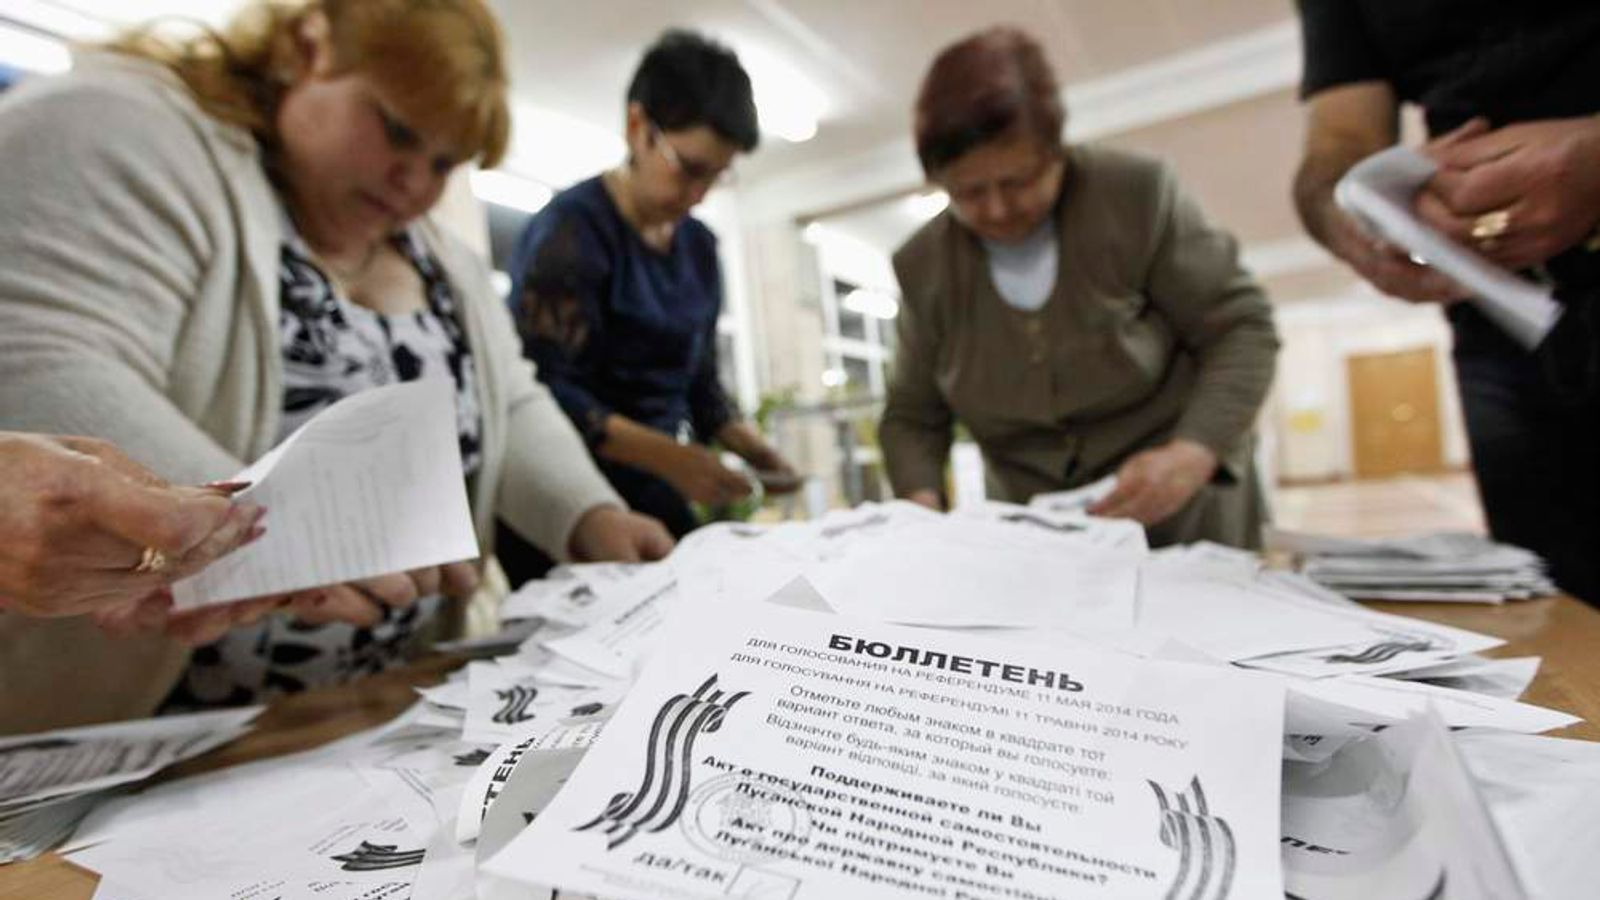 Members of local election commission empty ballot box as they start counting votes of today's referendum on status of Luhansk region in Luhansk